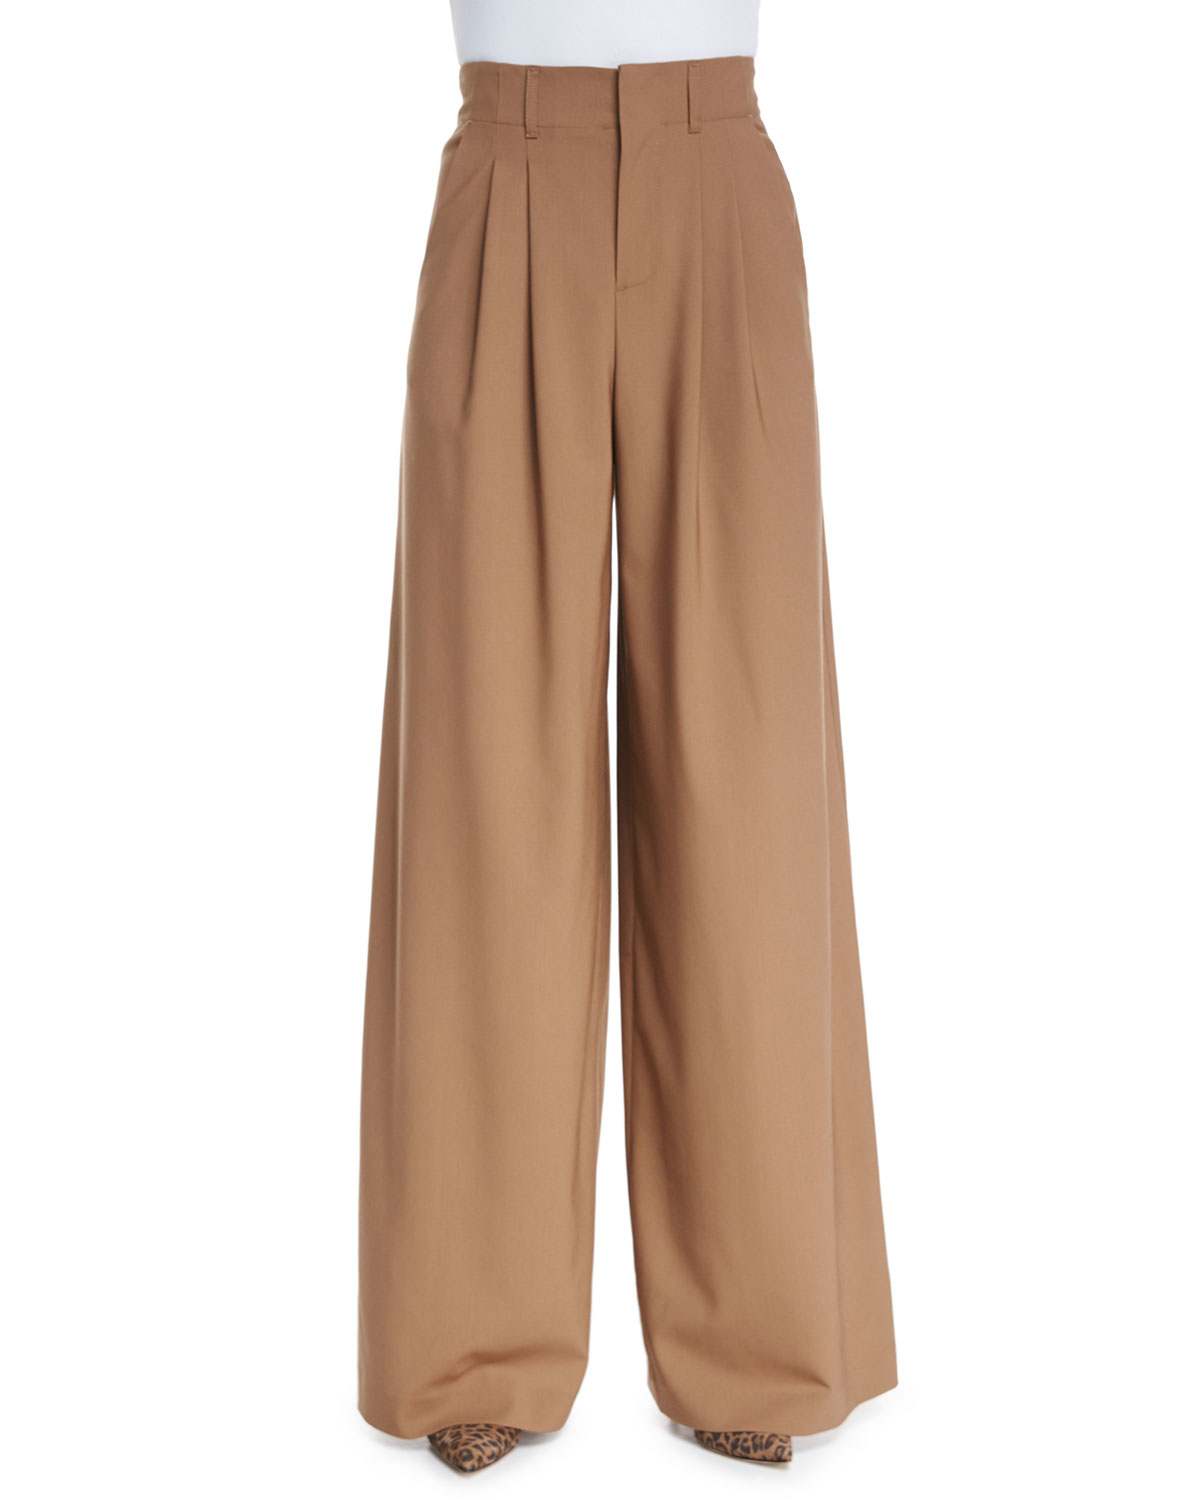 Search River Island. Brown leopard print pleated wide leg trousers +1; Quick view. Add to wishlist. £ Dark green paperbag tapered trousers. Quick view. Black high waisted wide leg trousers. Quick view. Add to wishlist. £ Black popper side leggings. Quick view. Add to wishlist.